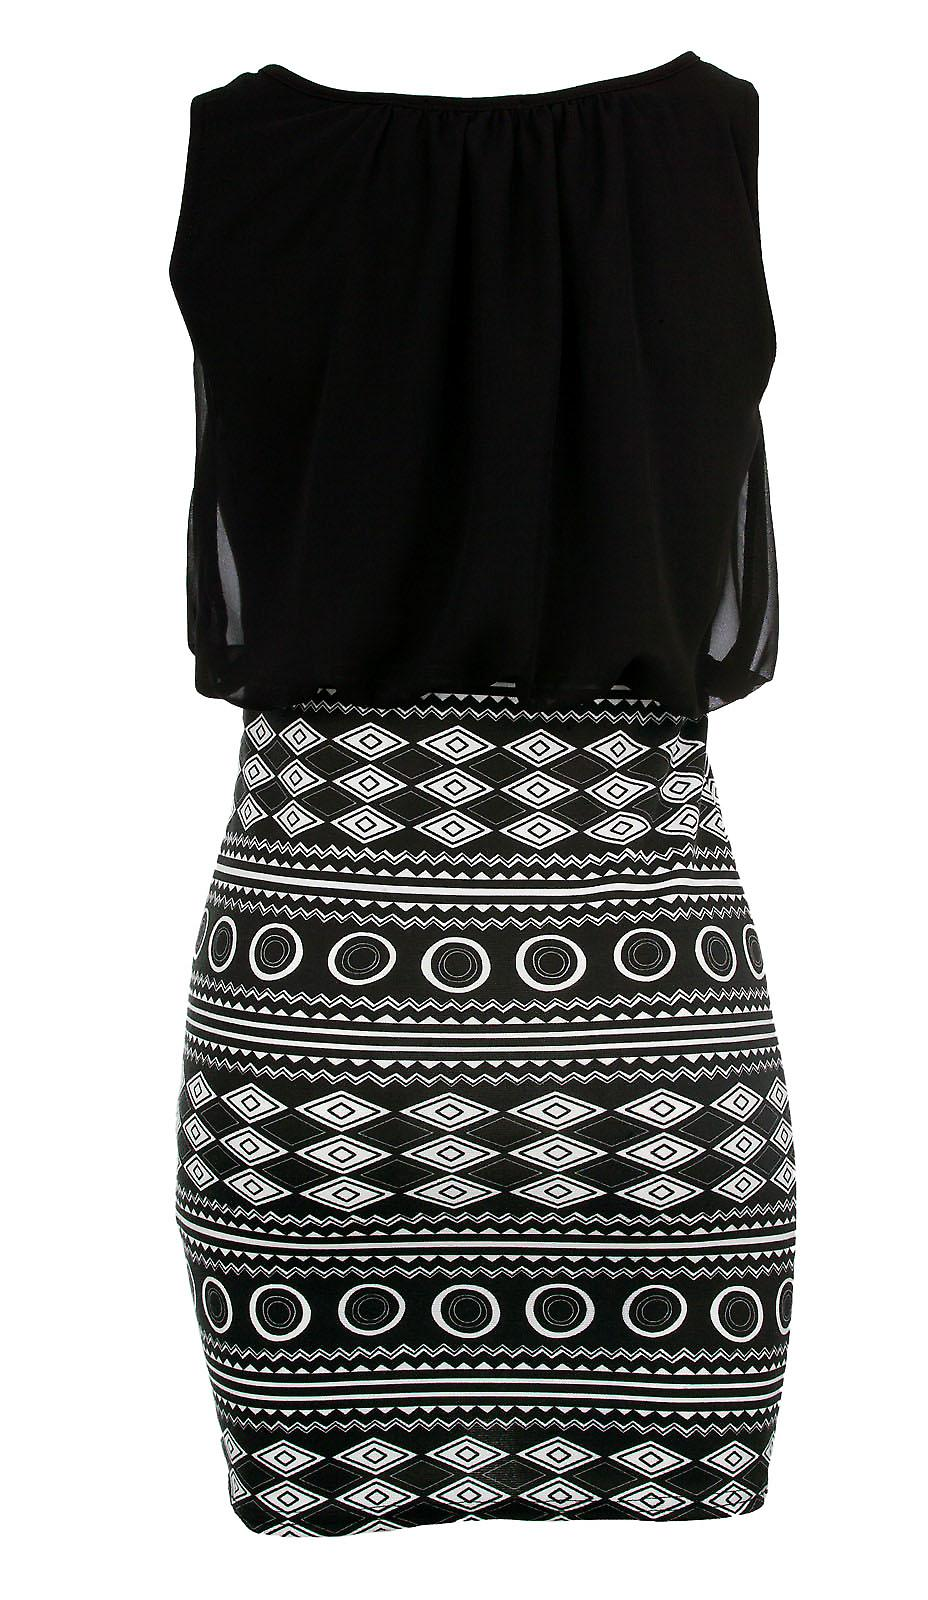 Waooh - Dress short geometric Ente